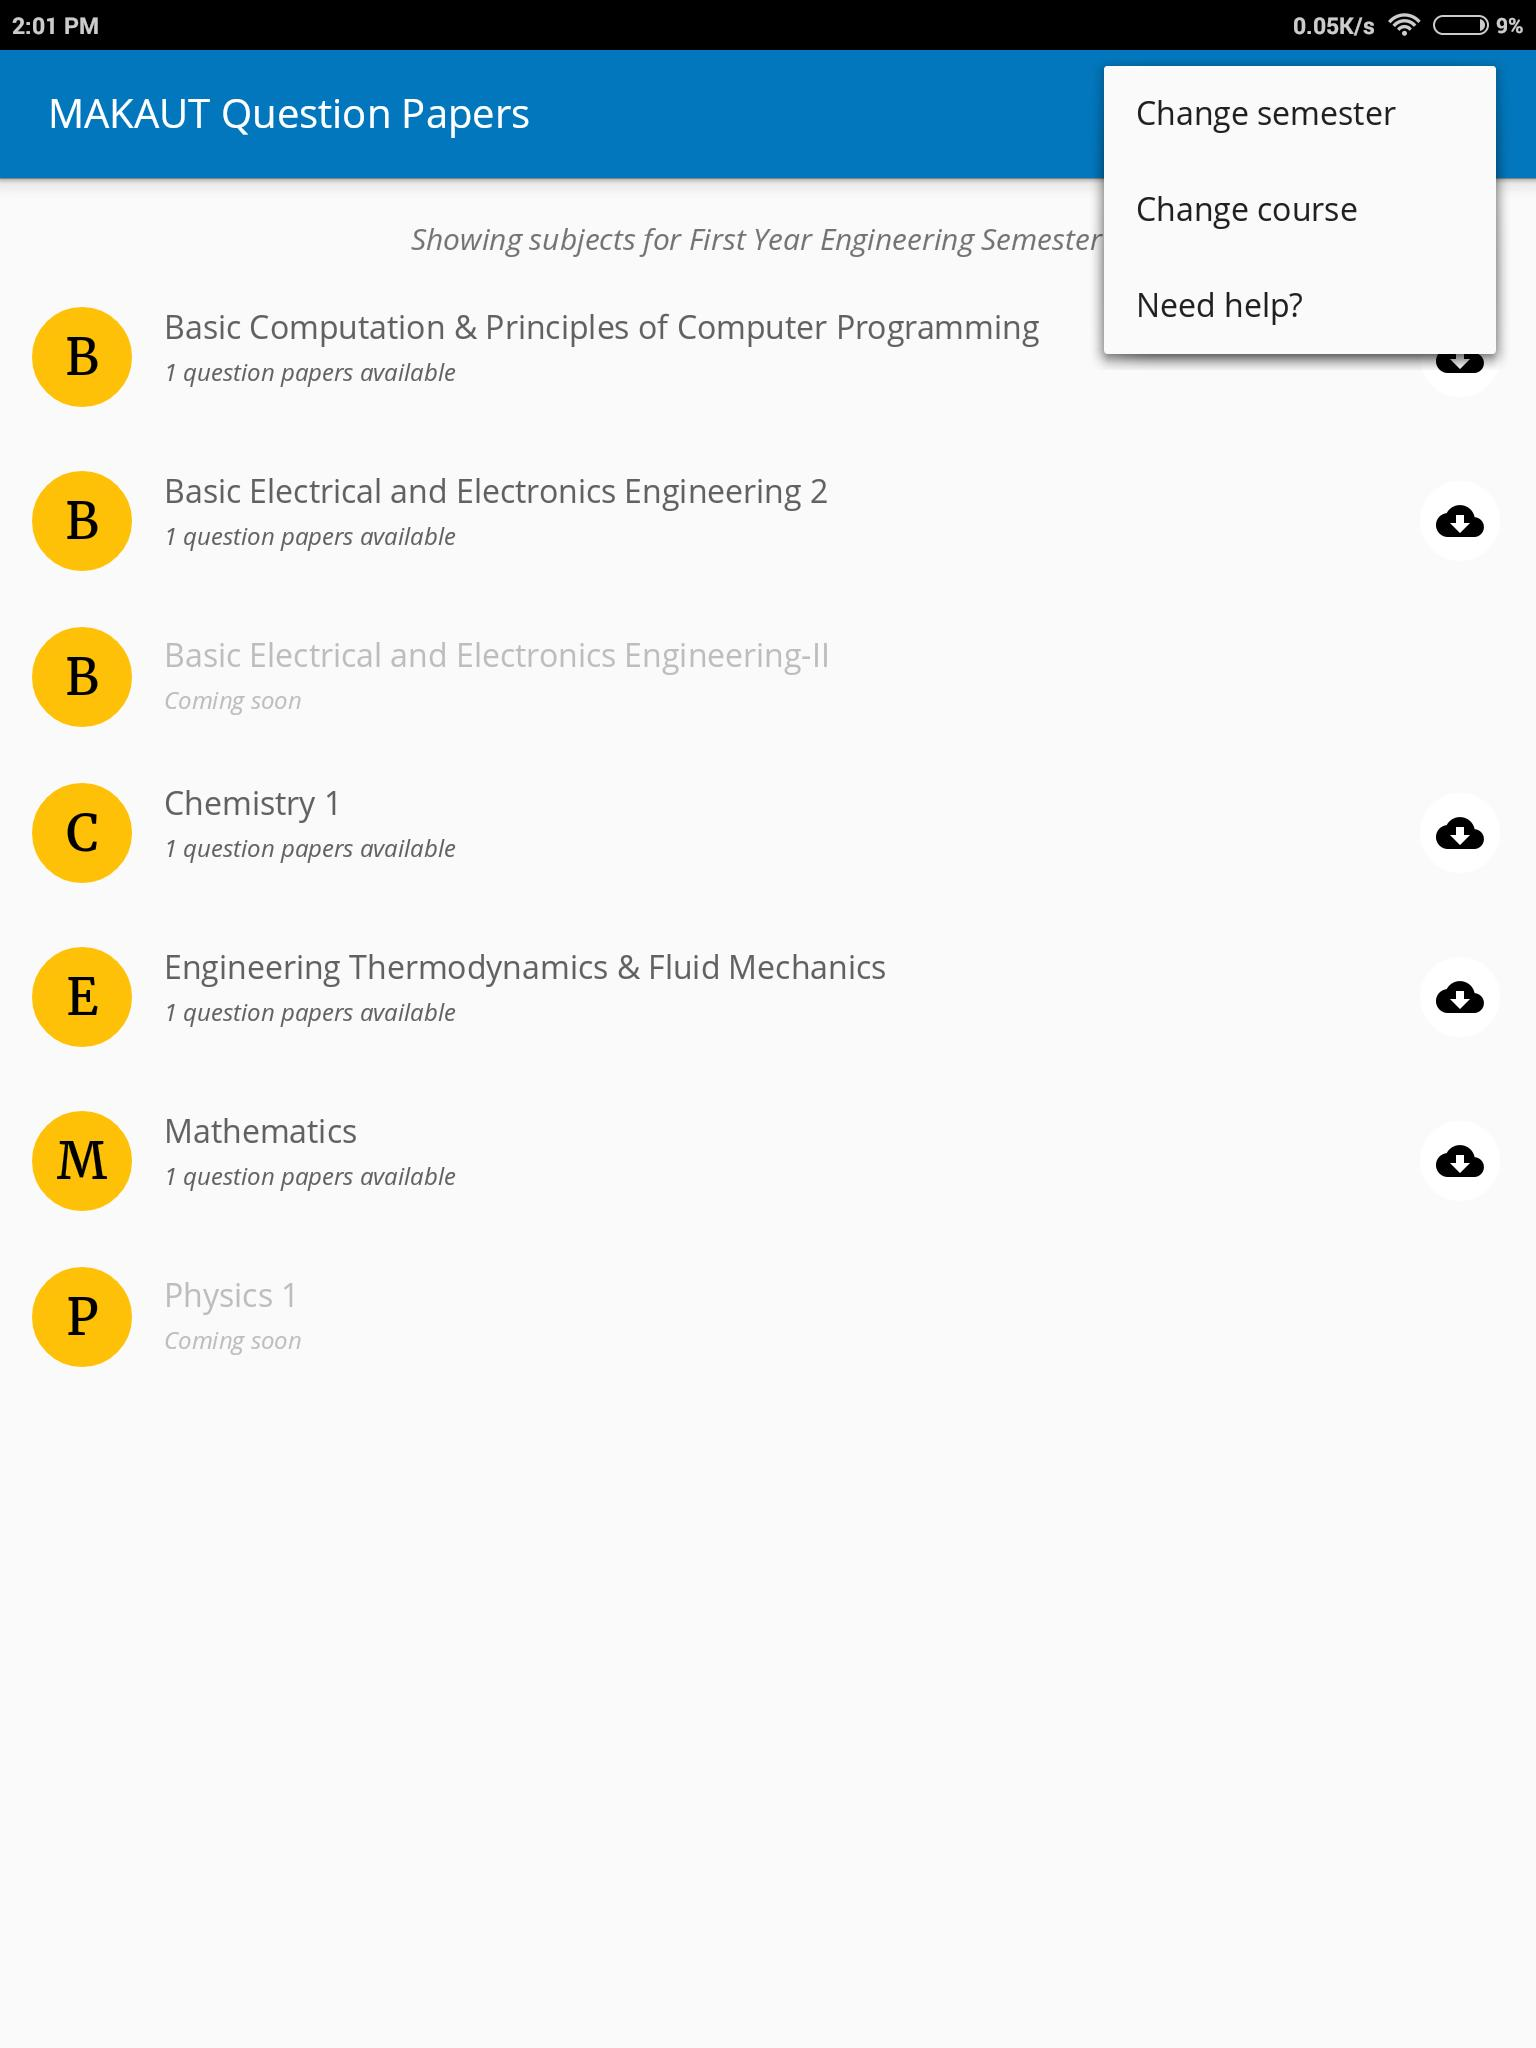 MAKAUT (WBUT) Exam Papers for Android - APK Download